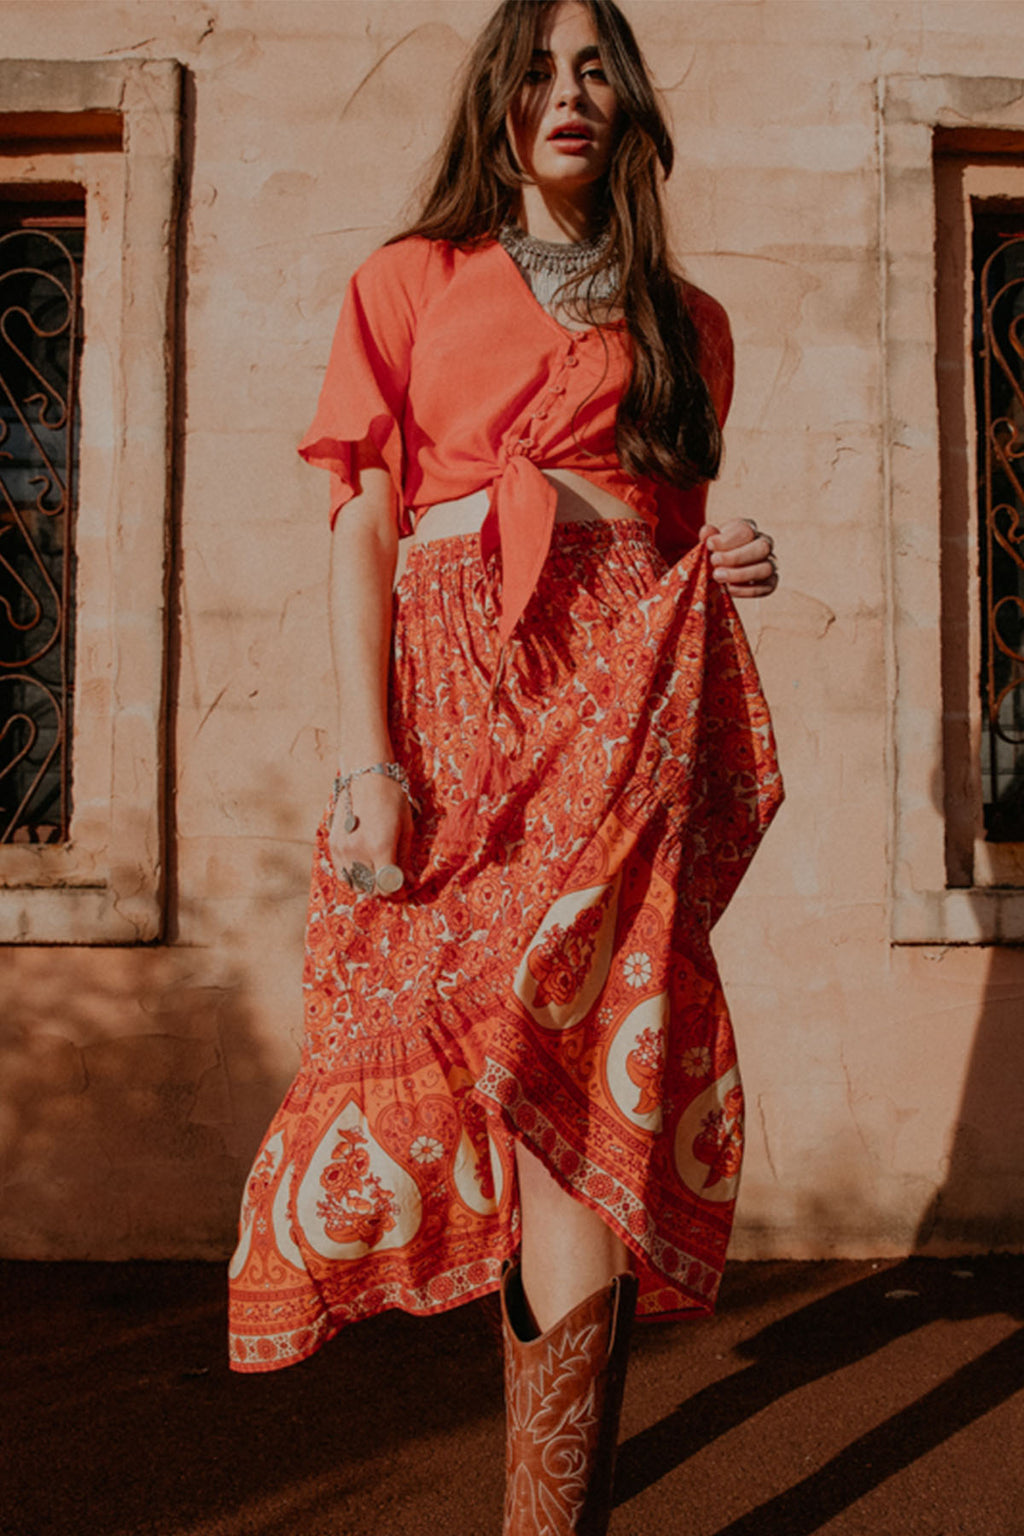 Festival of Roses Skirt - Moroccan Spice - The Bohemian Corner